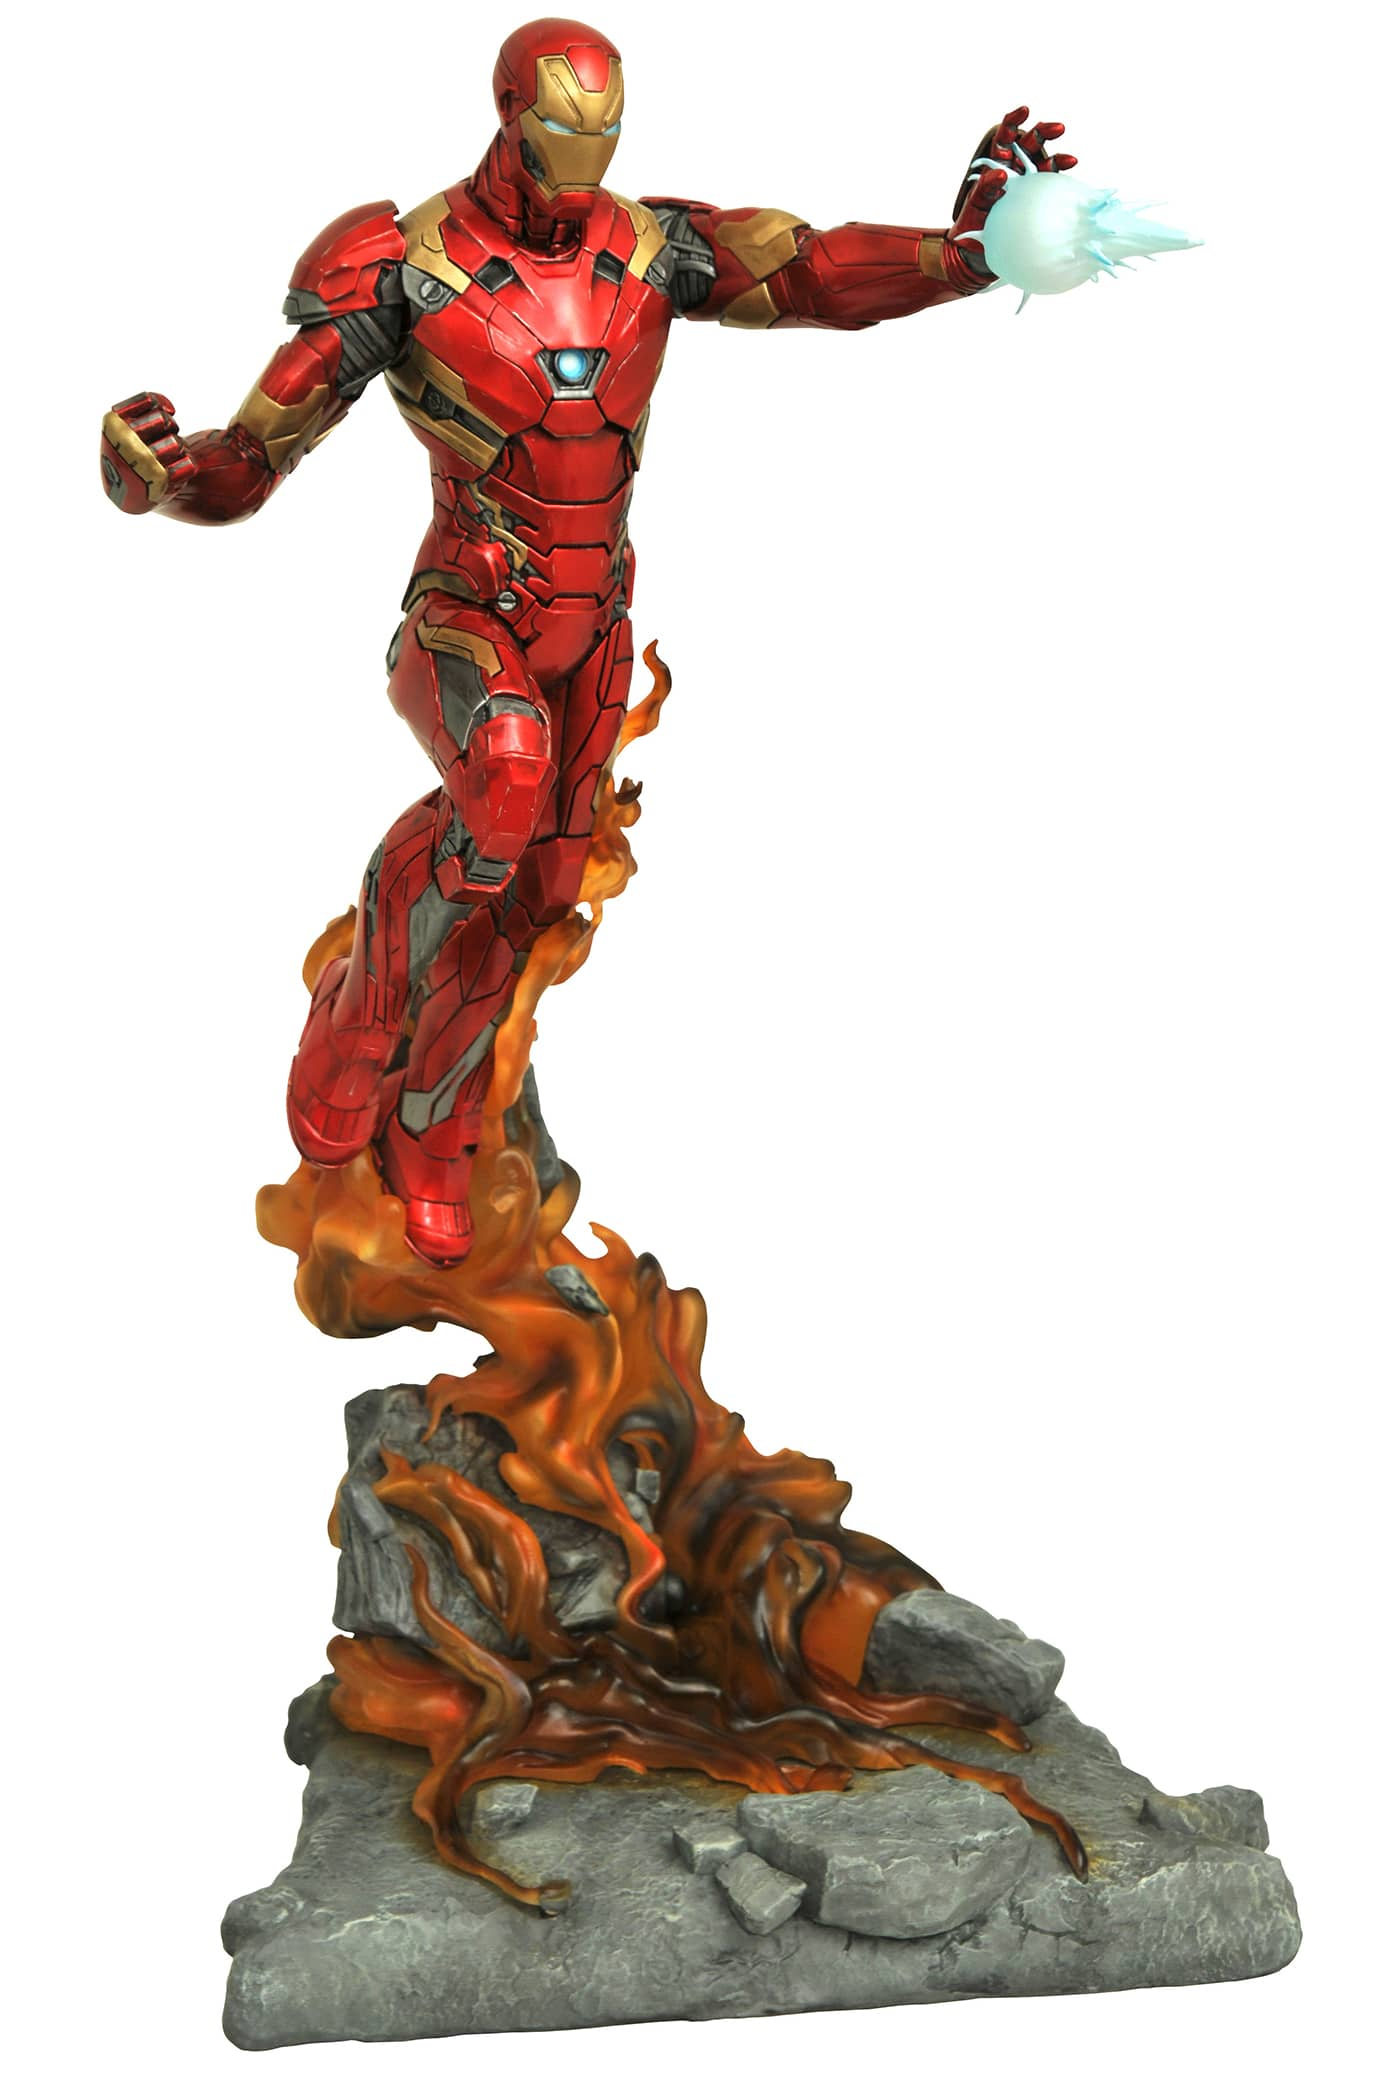 IRON MAN ESTATUA RESINA 53 CM CIVIL WAR MOVIE MARVEL MILESTONES